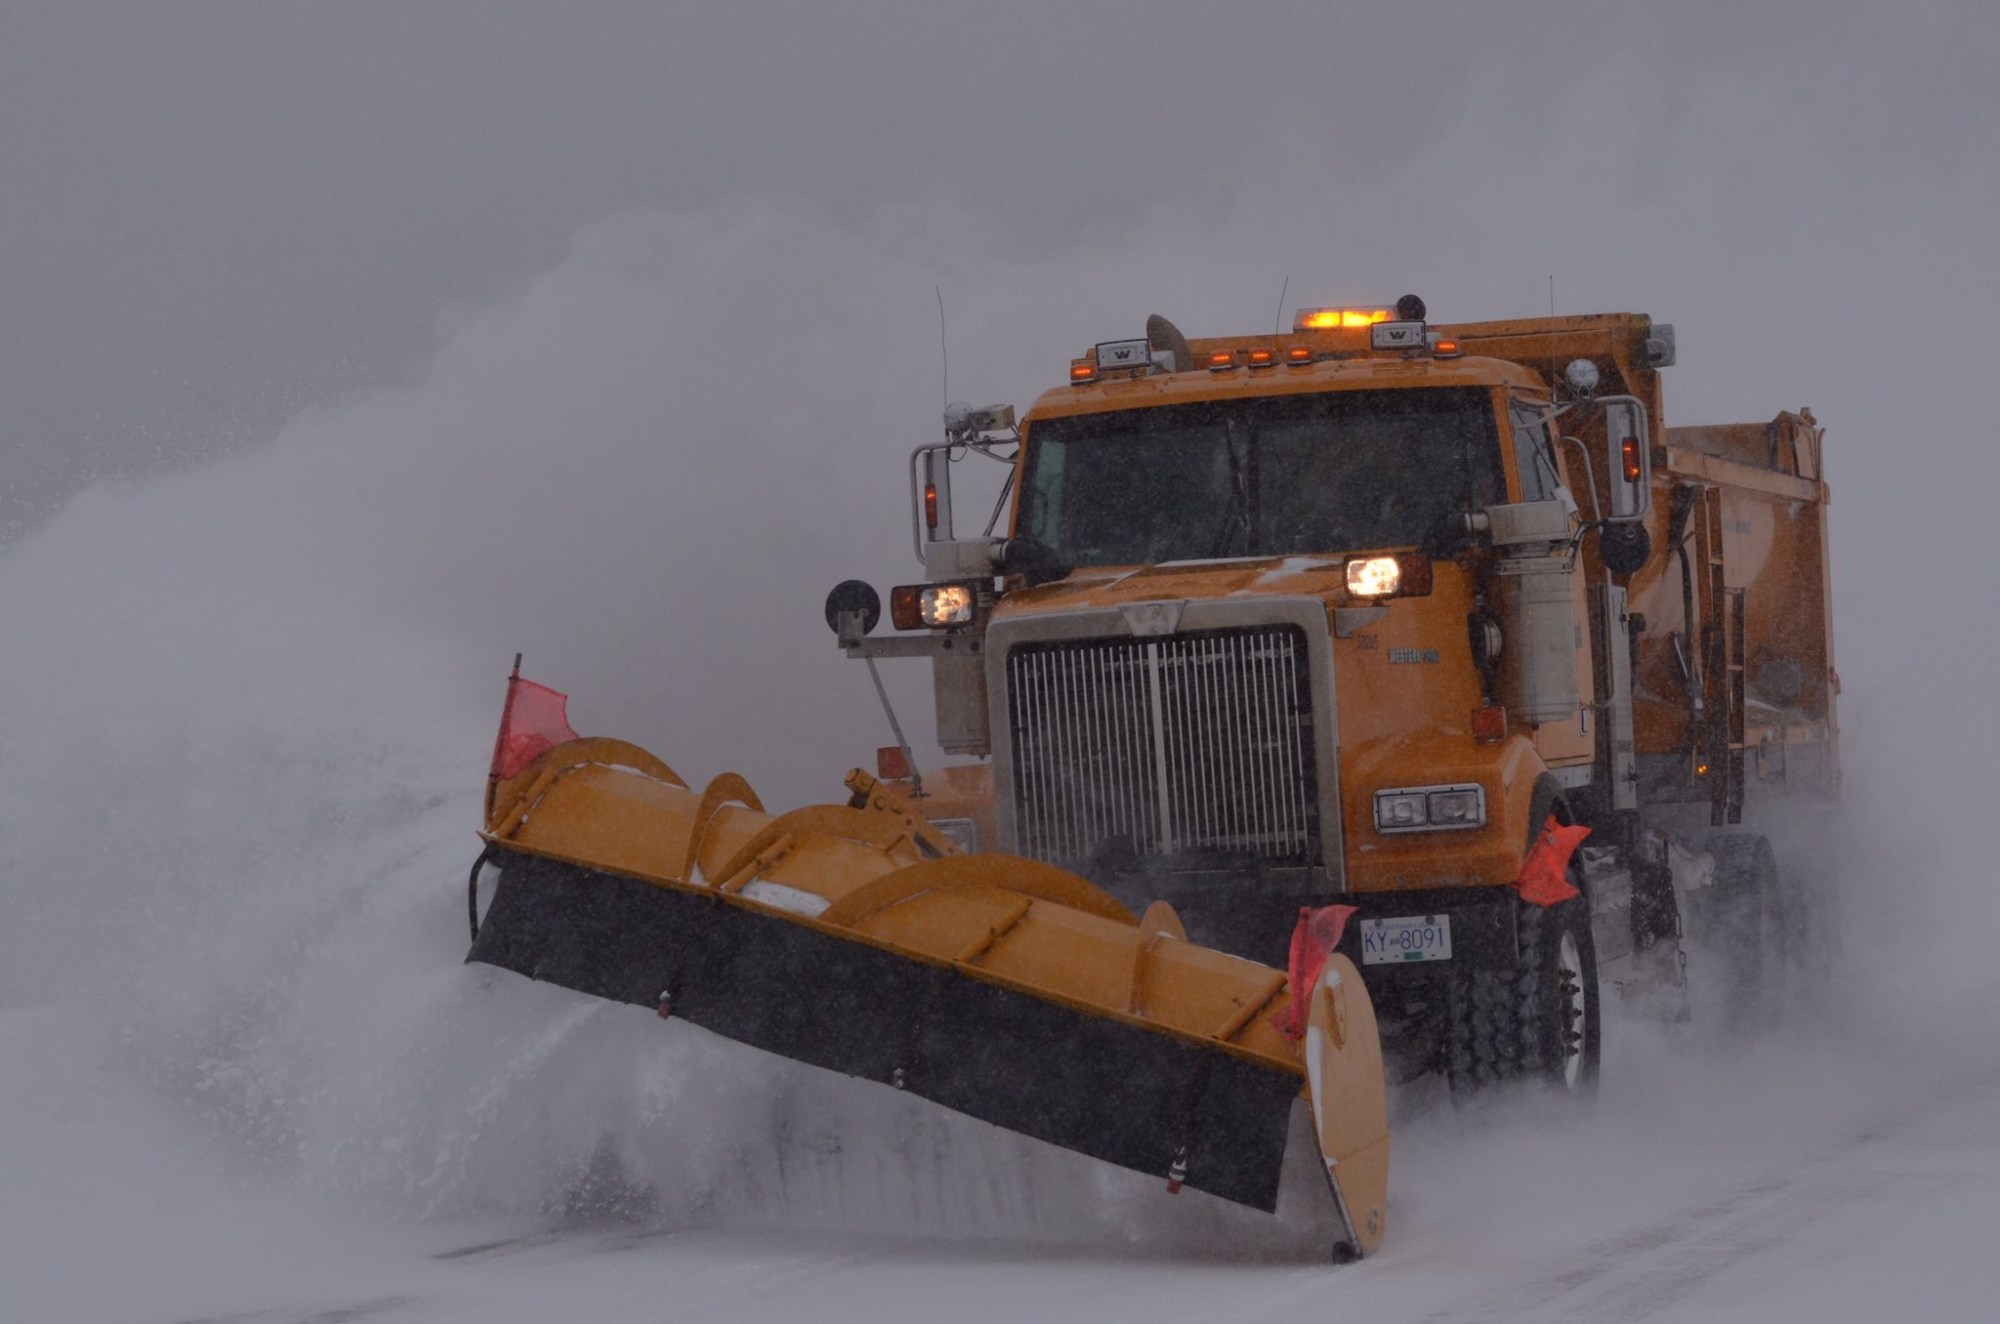 hight resolution of snow plow safety do s and don ts